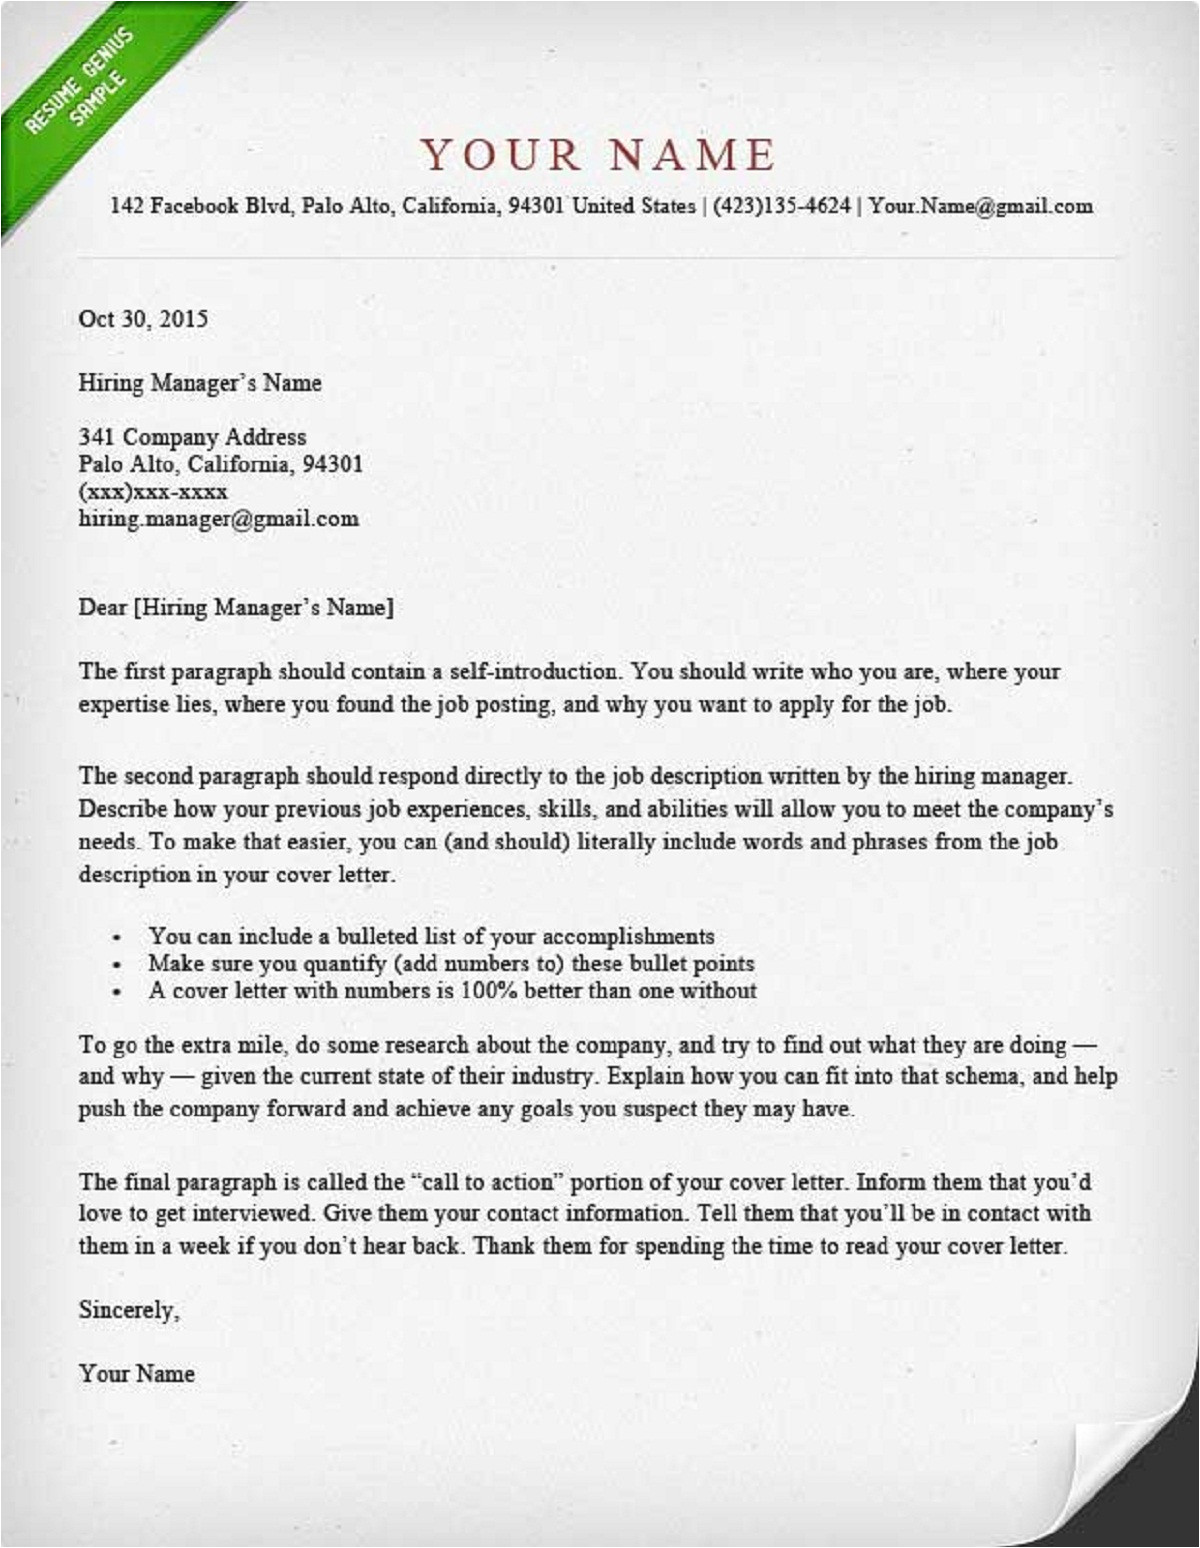 How to Right A Cover Letter for A Resume How to Write A Cover Letter Guide with Sample How Can Done